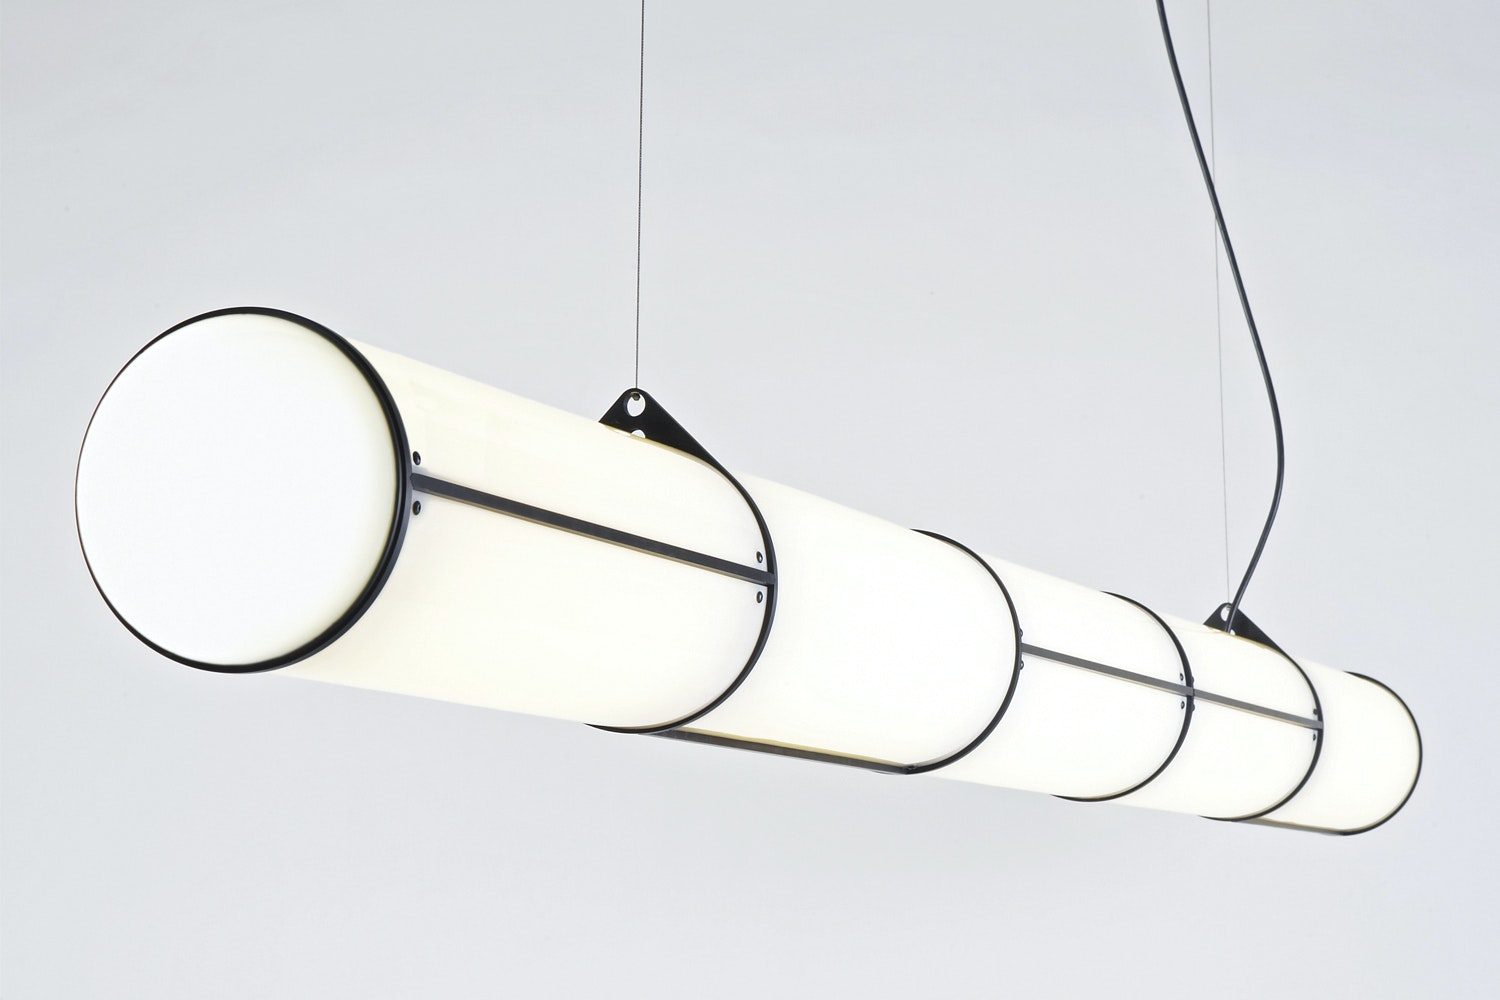 Endless - 5 Units Suspension Lamp by Jason Miller for Roll & Hill